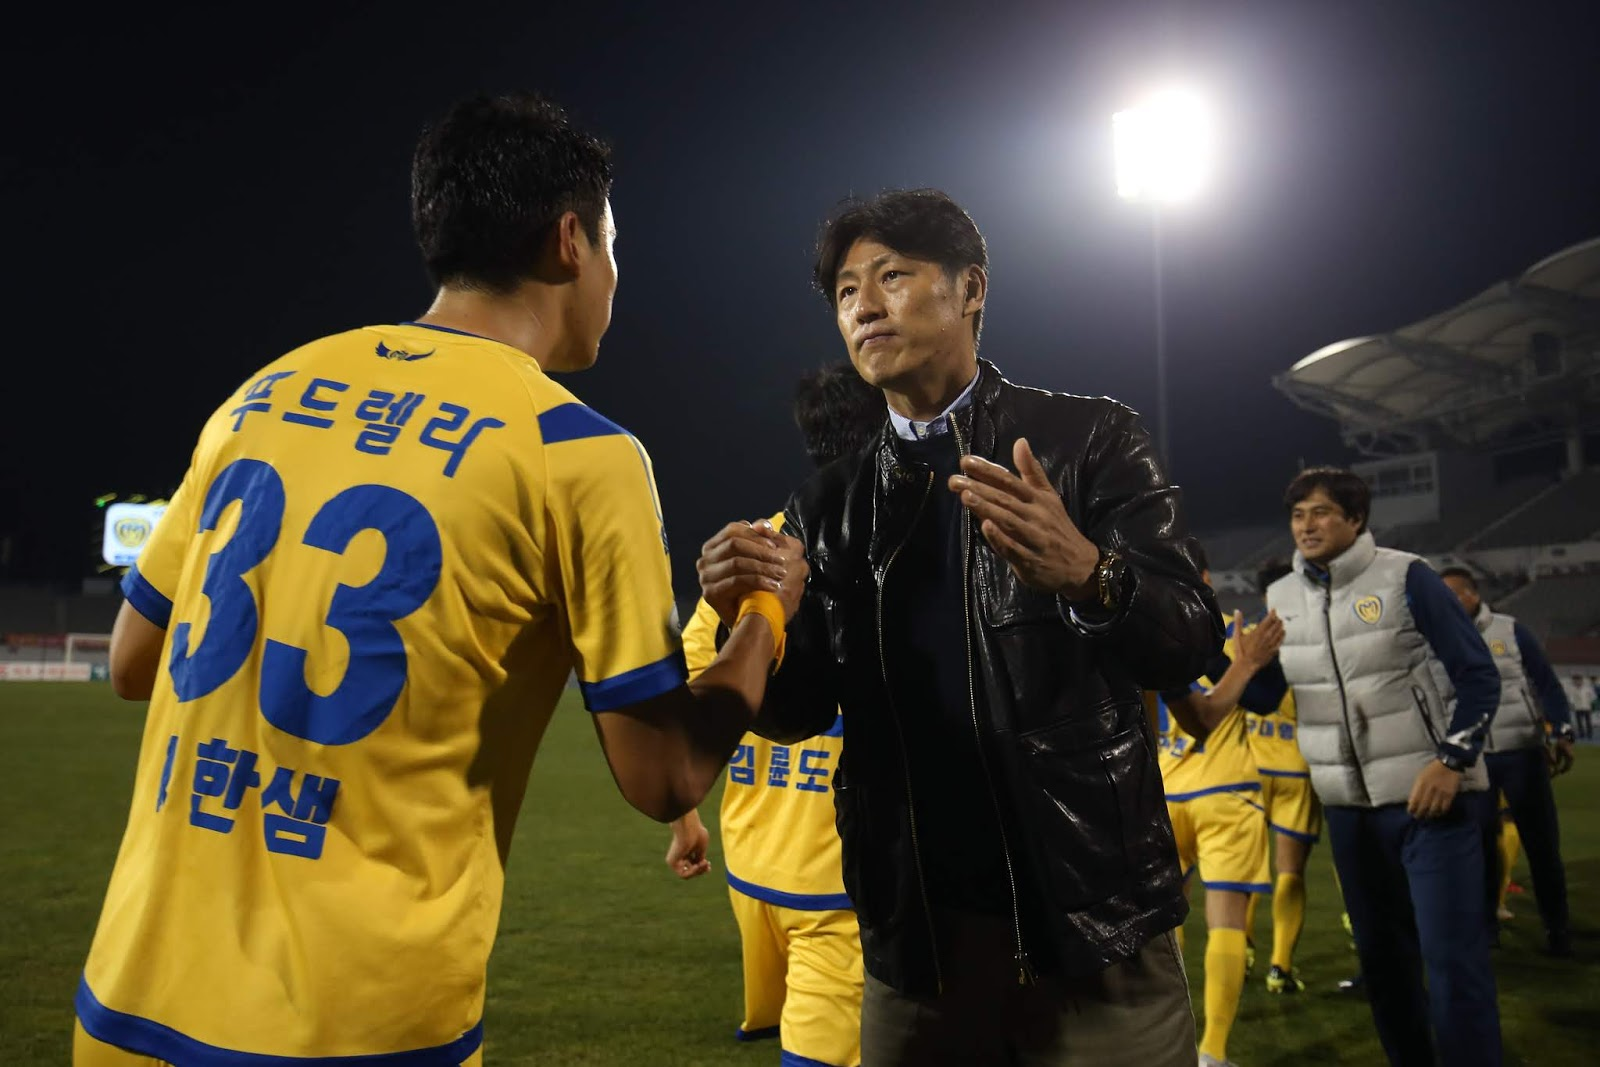 K League 2 Preview: Asan Mugunghwa vs Seongnam FC